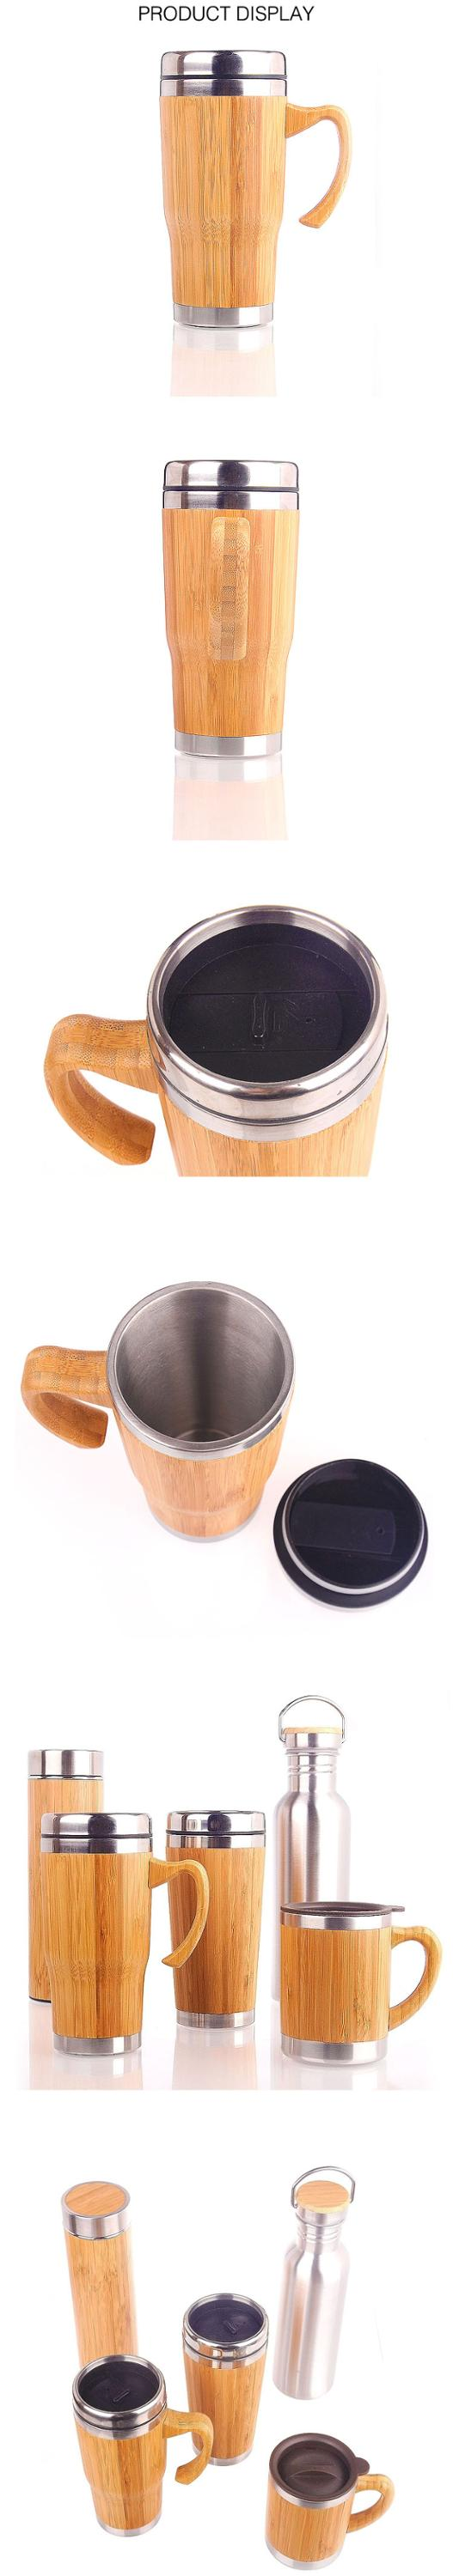 450ml/16oz BambooTravel Coffee Tumbler with Handle Stainless Steel Insulated Bamboo Coffee Tea Mug